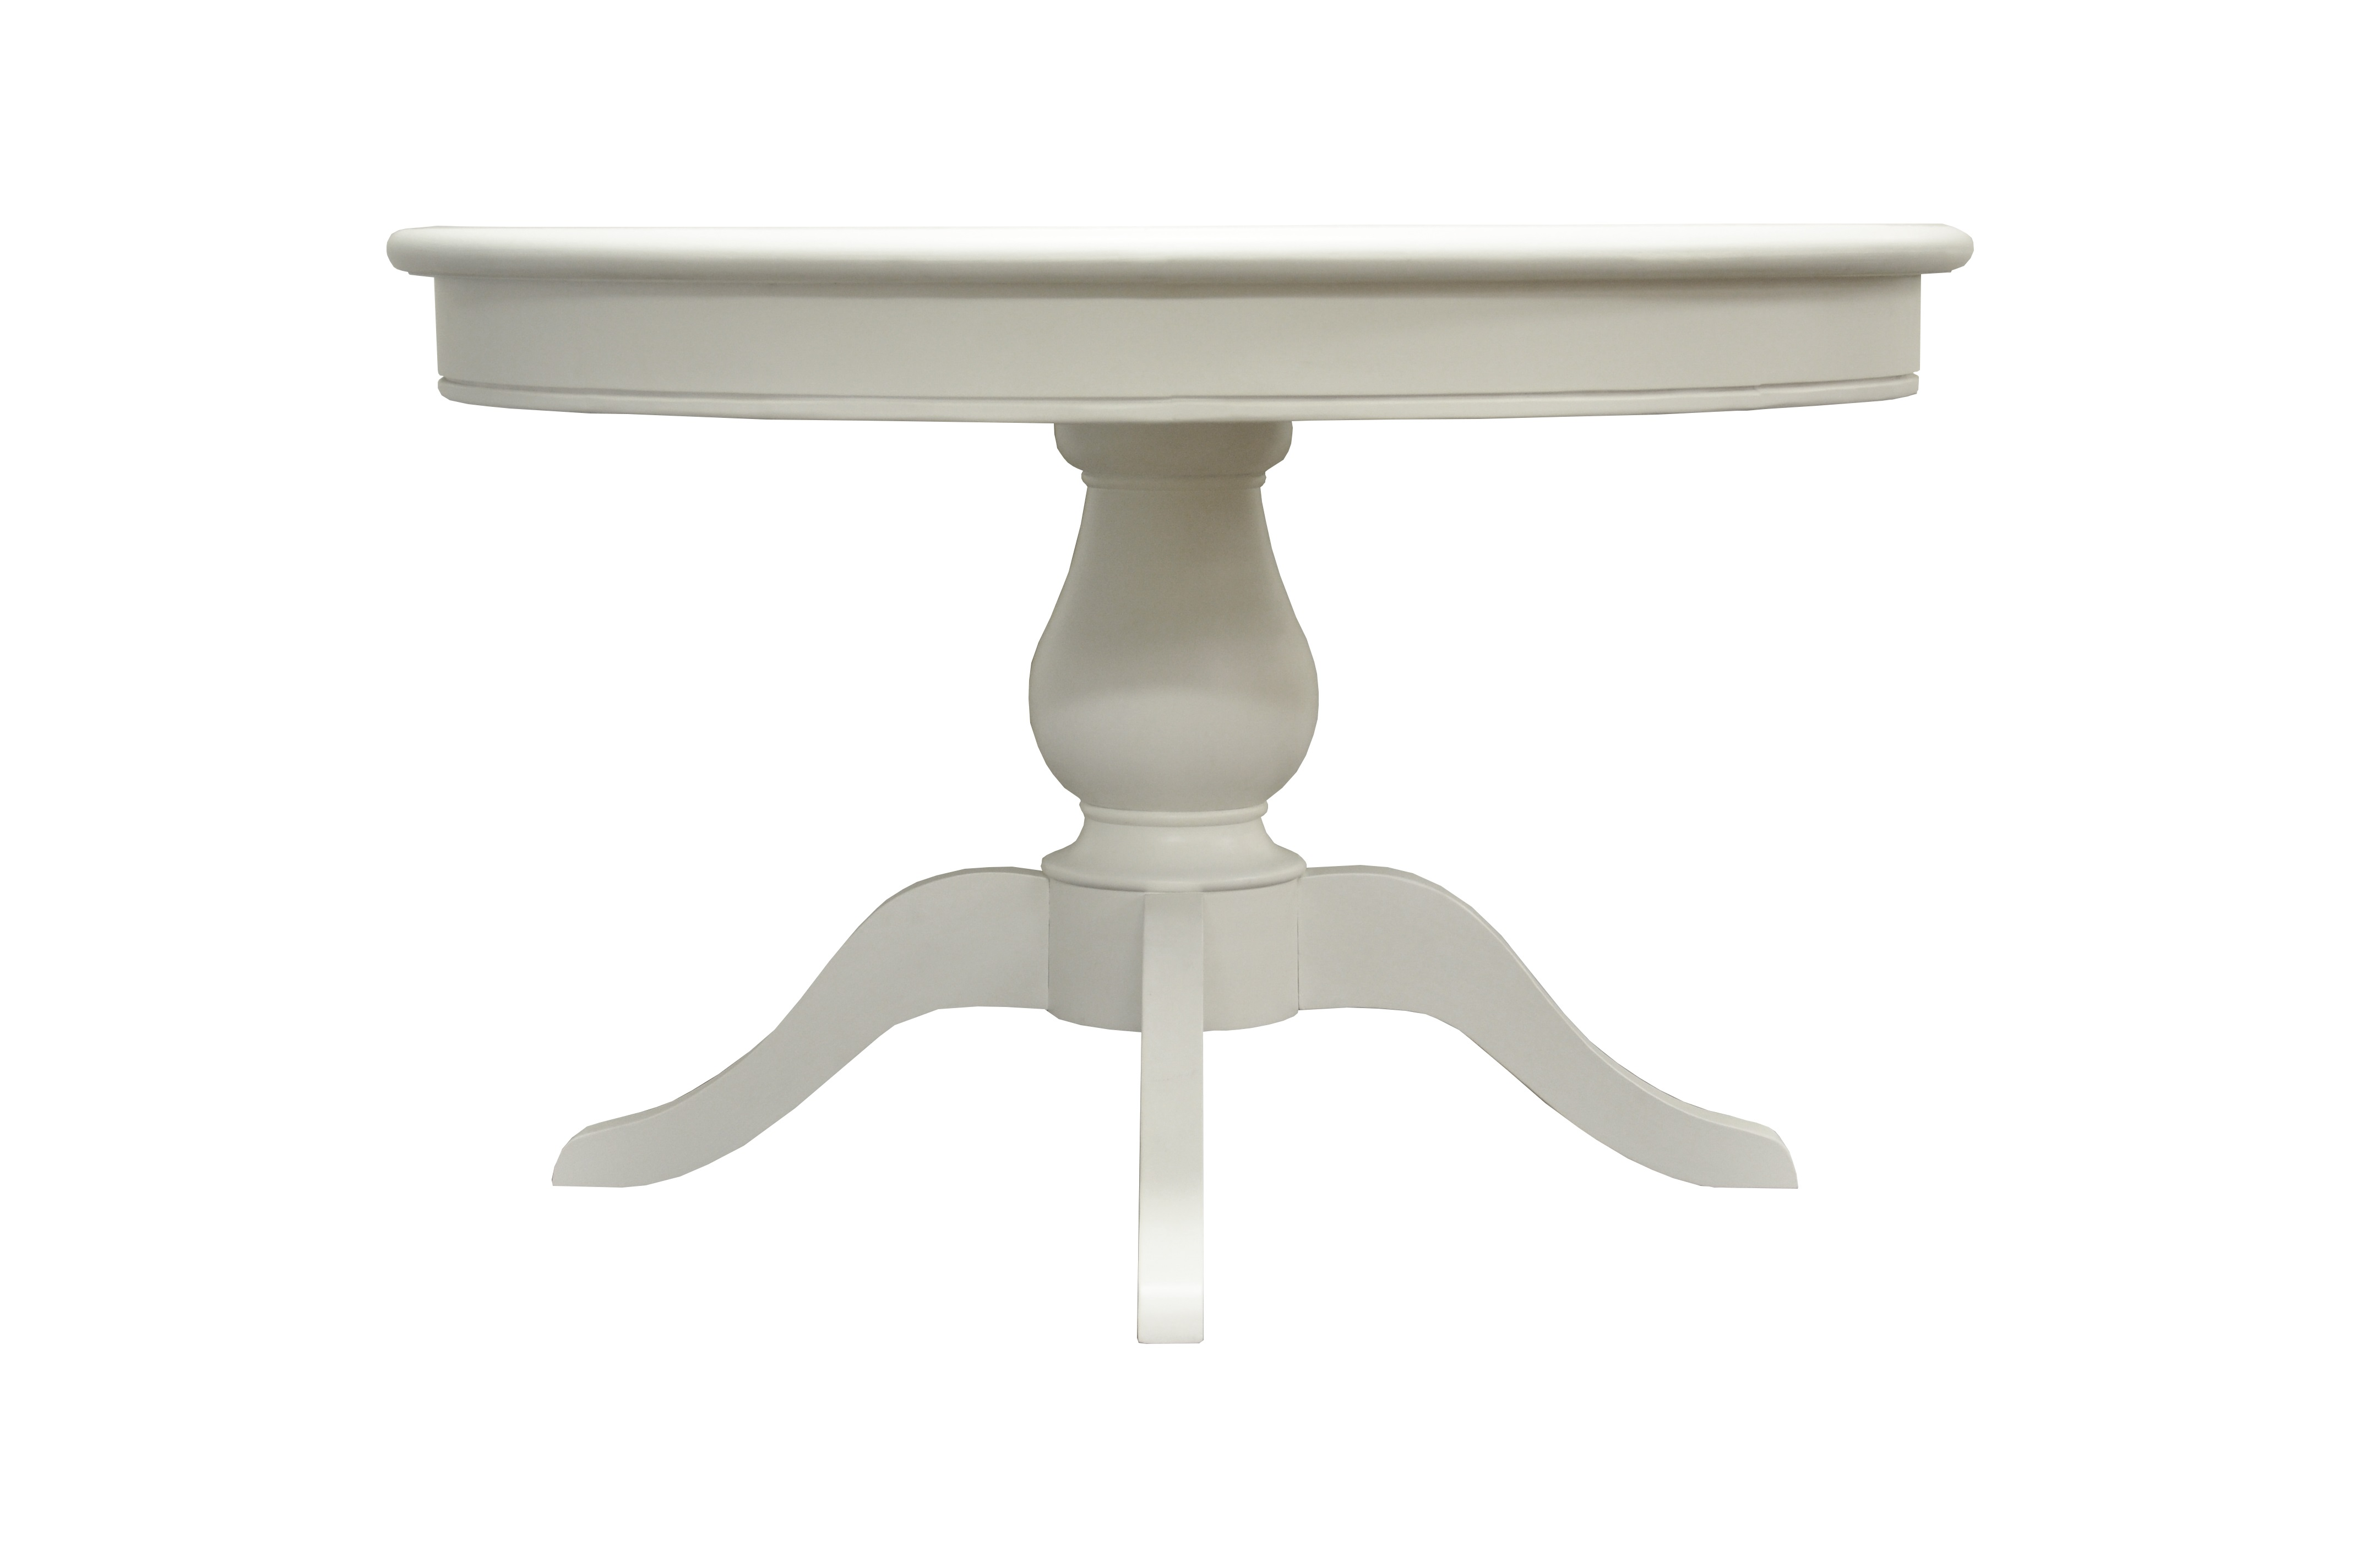 Furniture Express Rhodes Round Table 2\' 6 Small Single White Dining Table Image0 Image